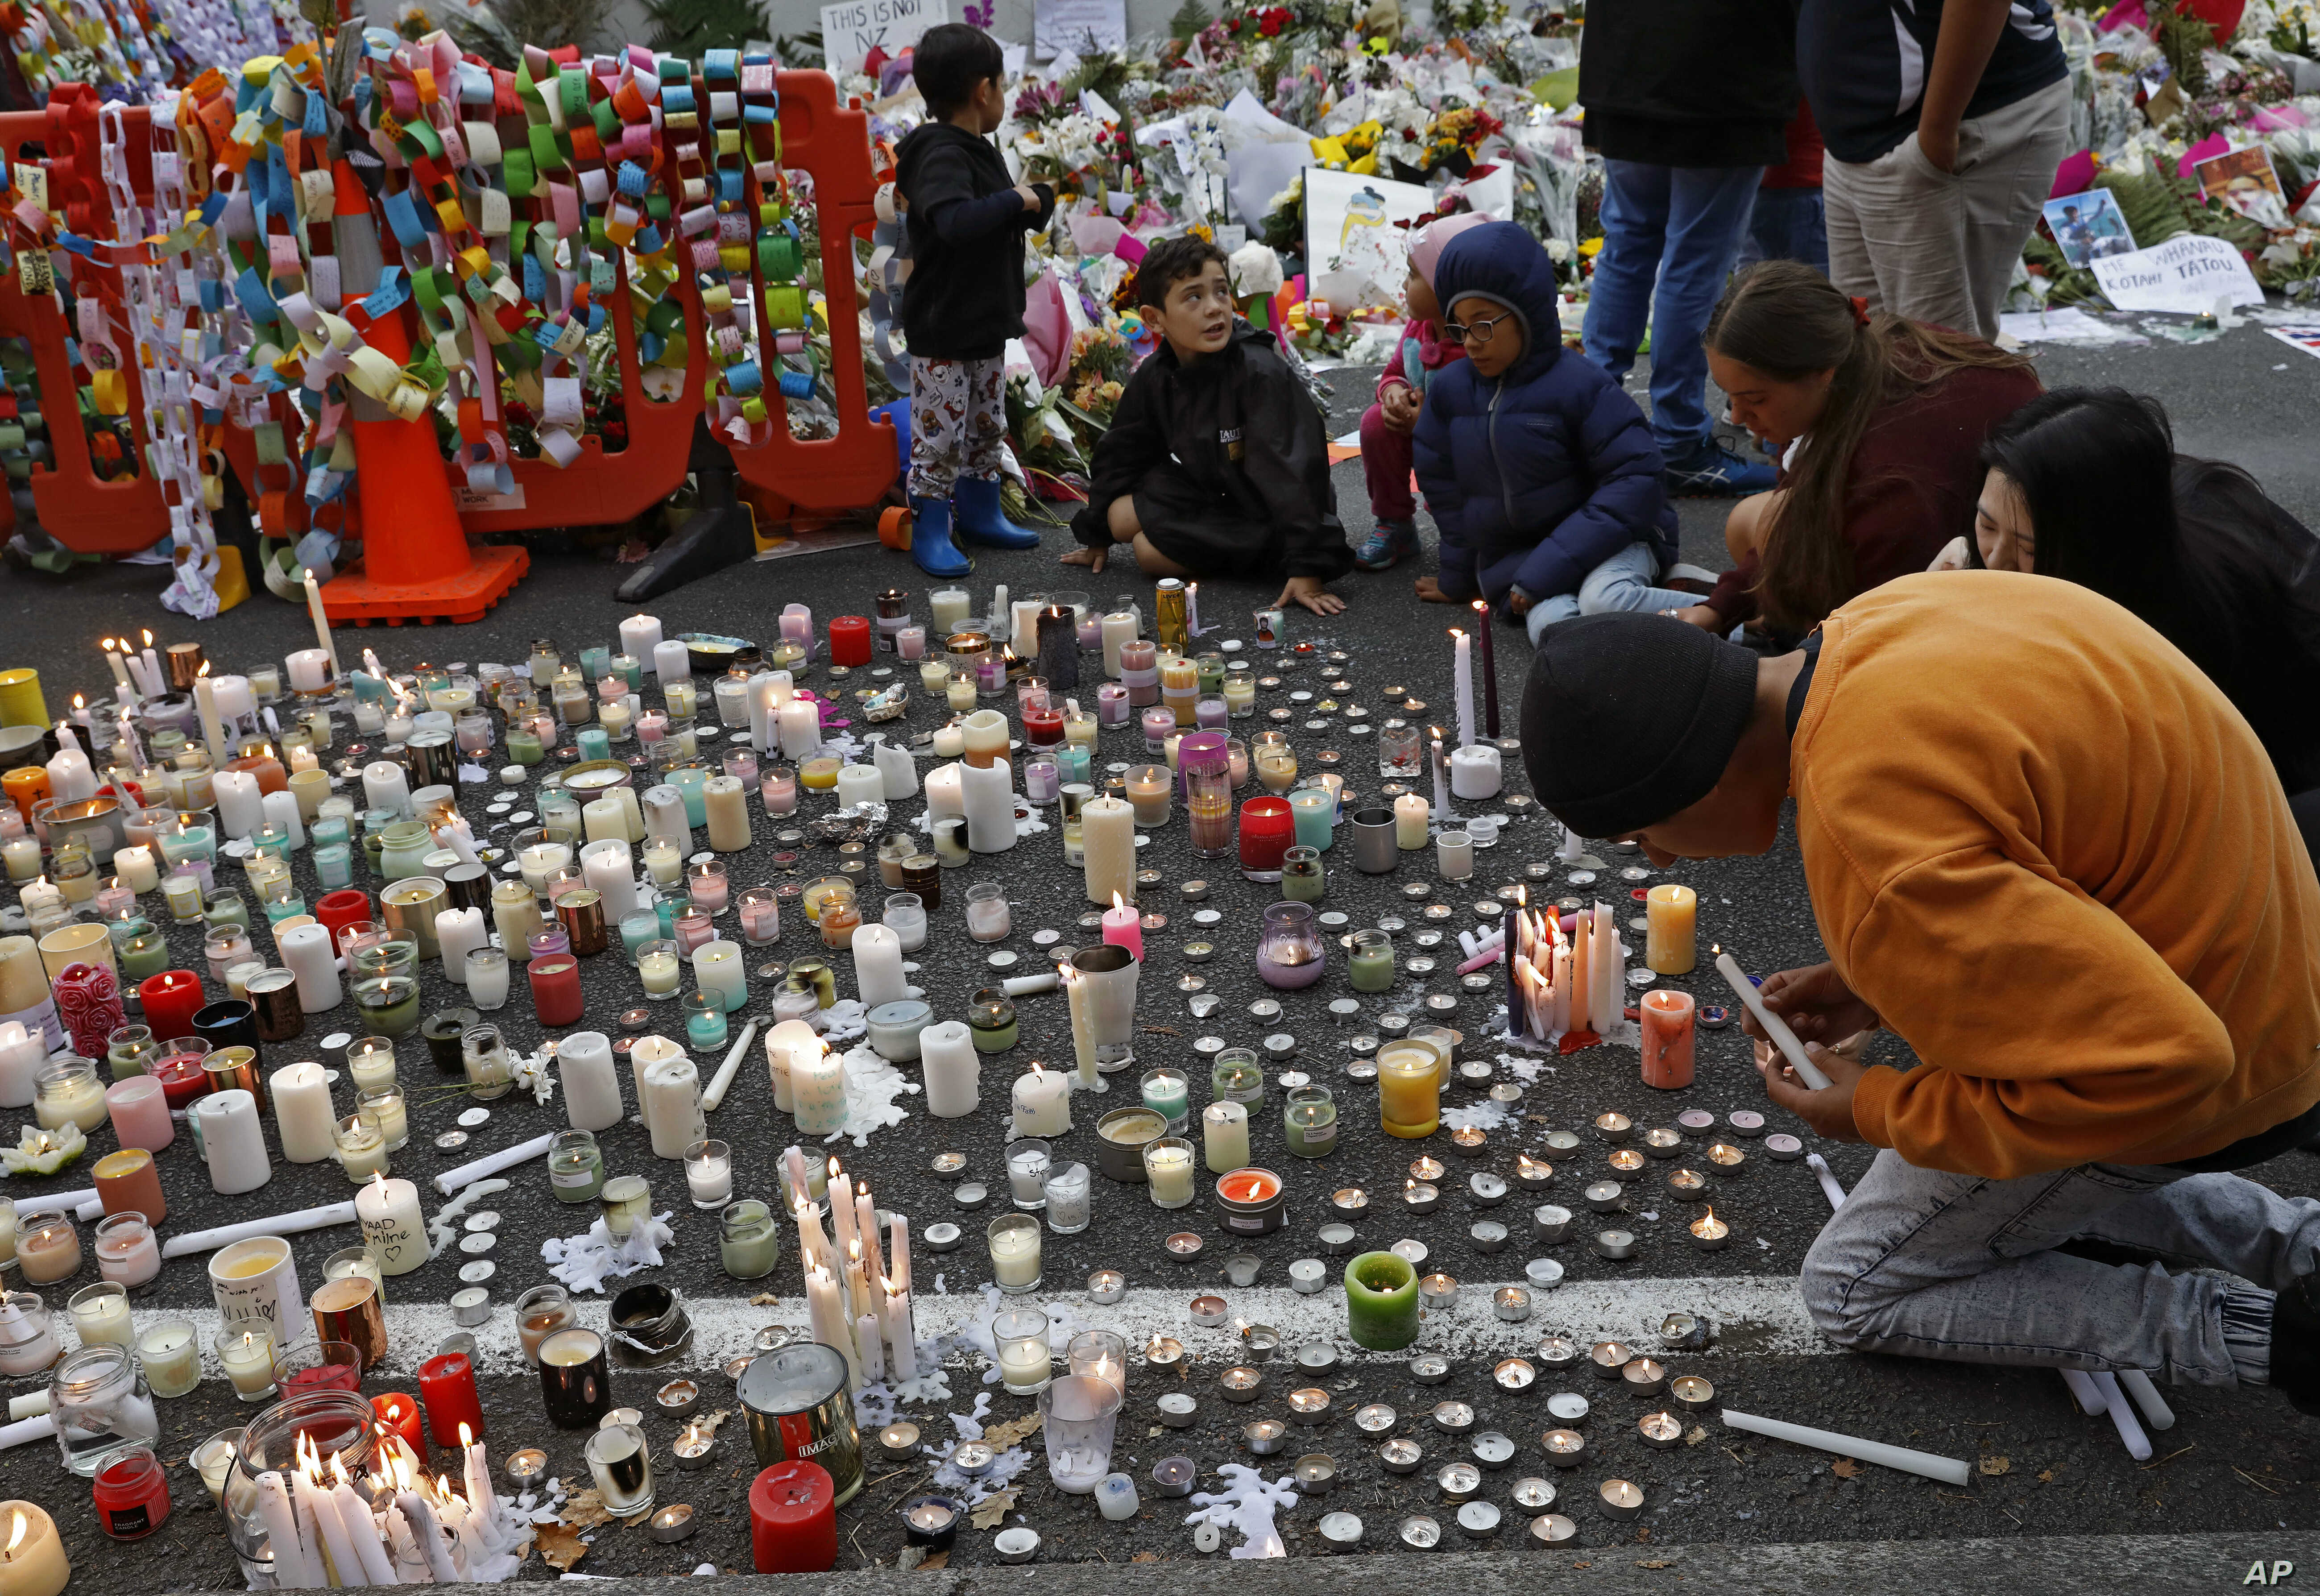 Students light candles as they gather for a vigil to commemorate victims of Friday's shooting, outside the Al Noor mosque in Christchurch, New Zealand, March 18, 2019.